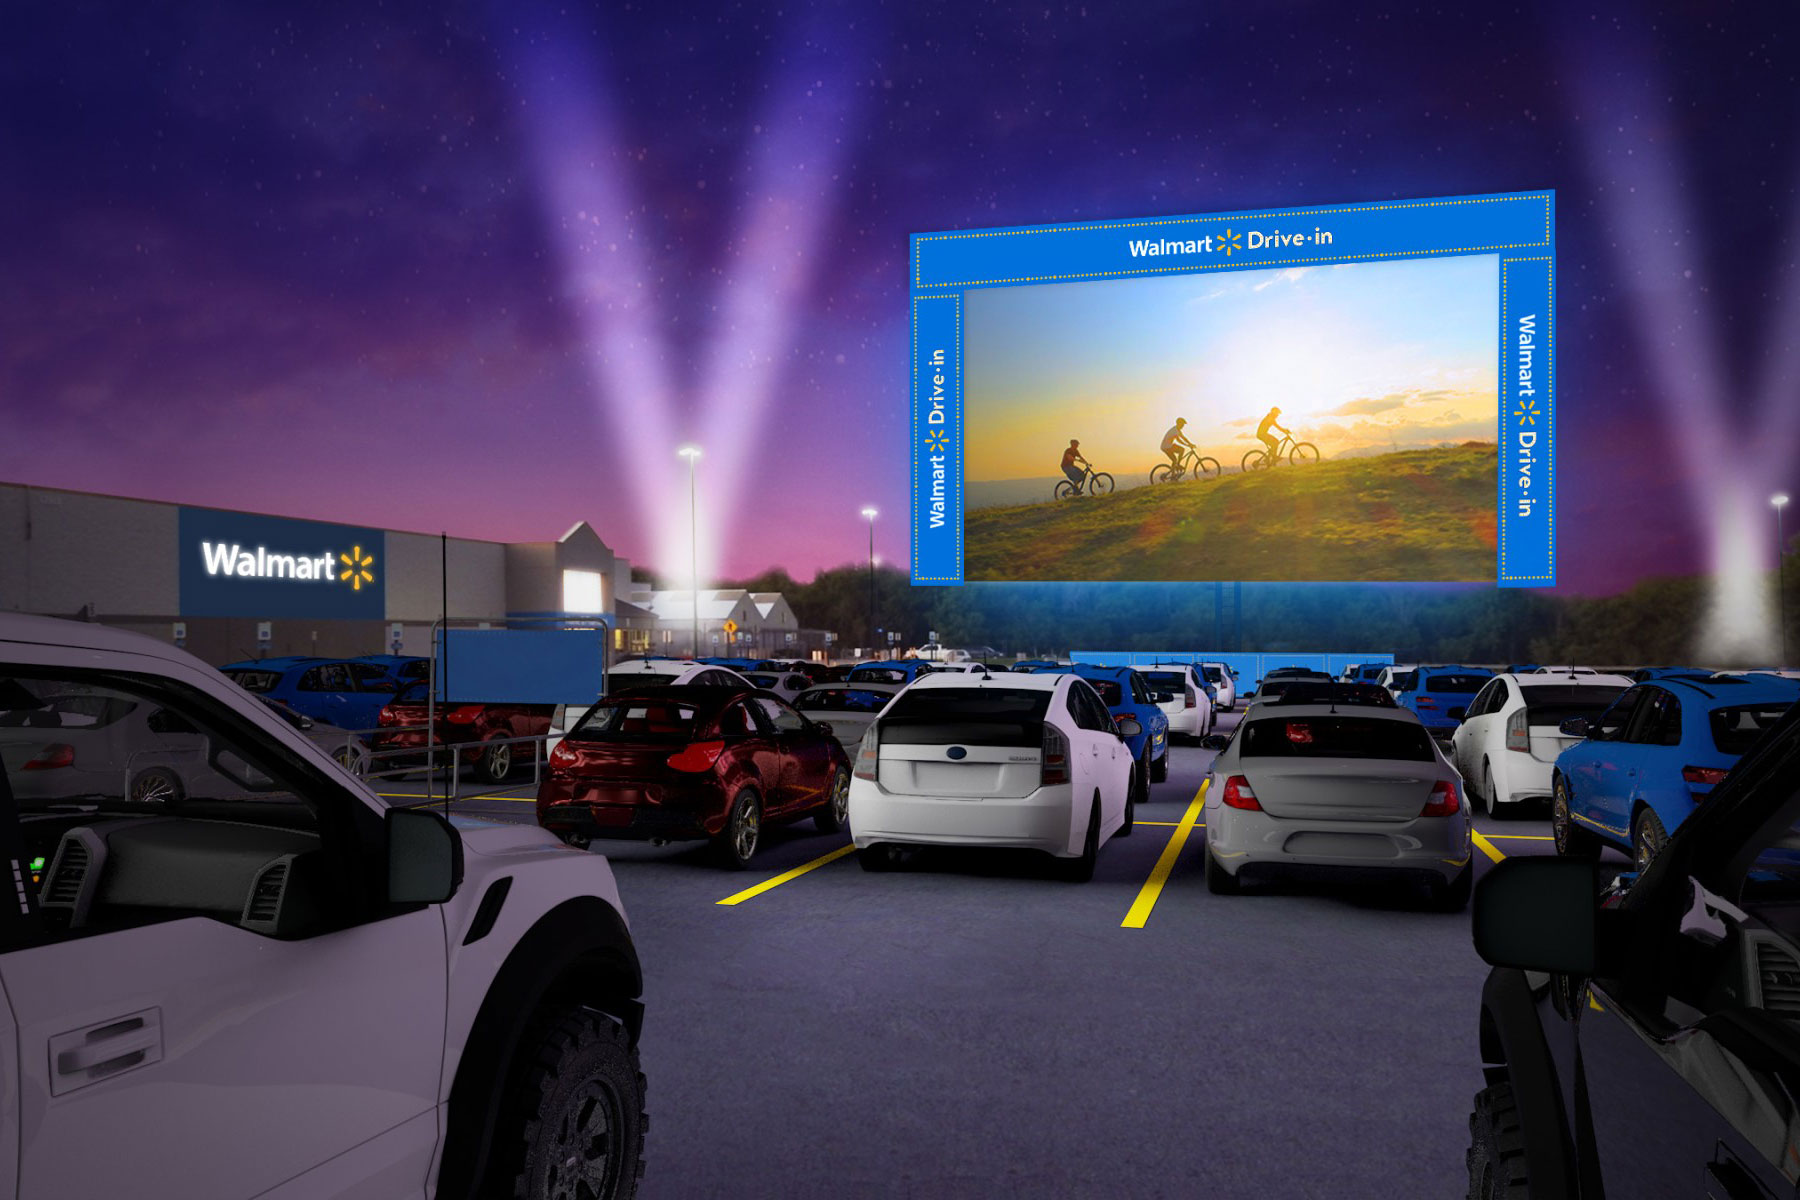 Walmart drive-in with screen in parking lot